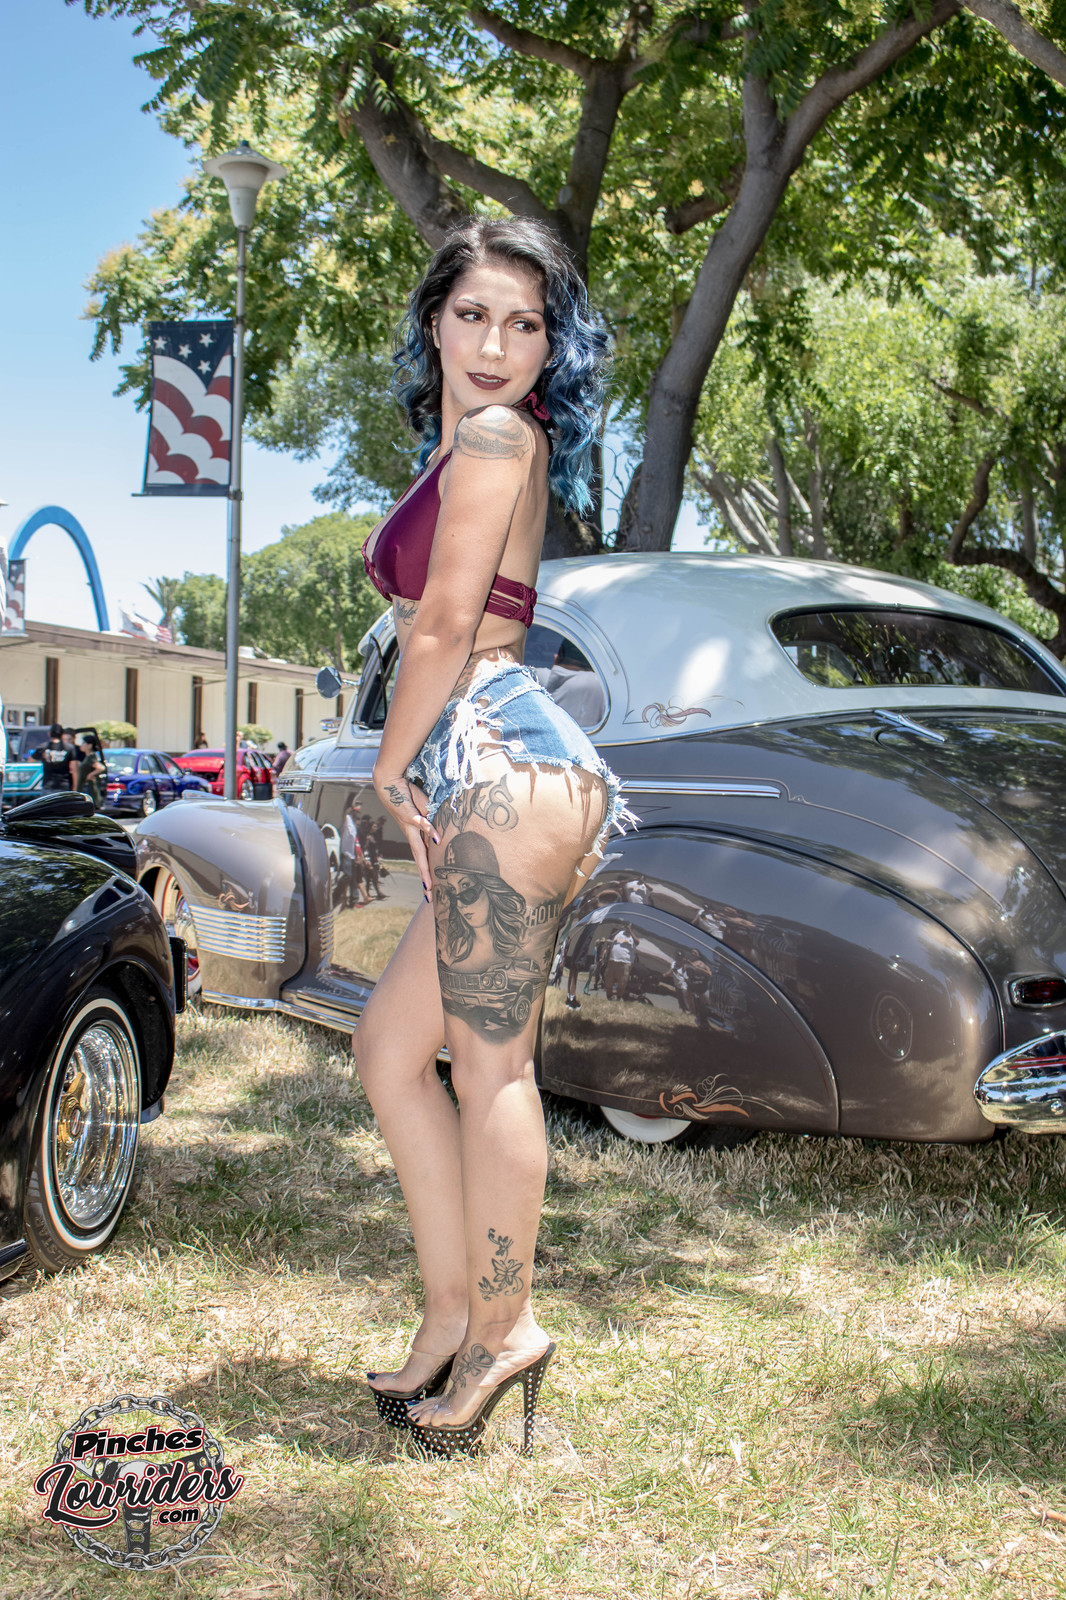 Pinches Lowriders Lowriders Lowriding Models Lowrider